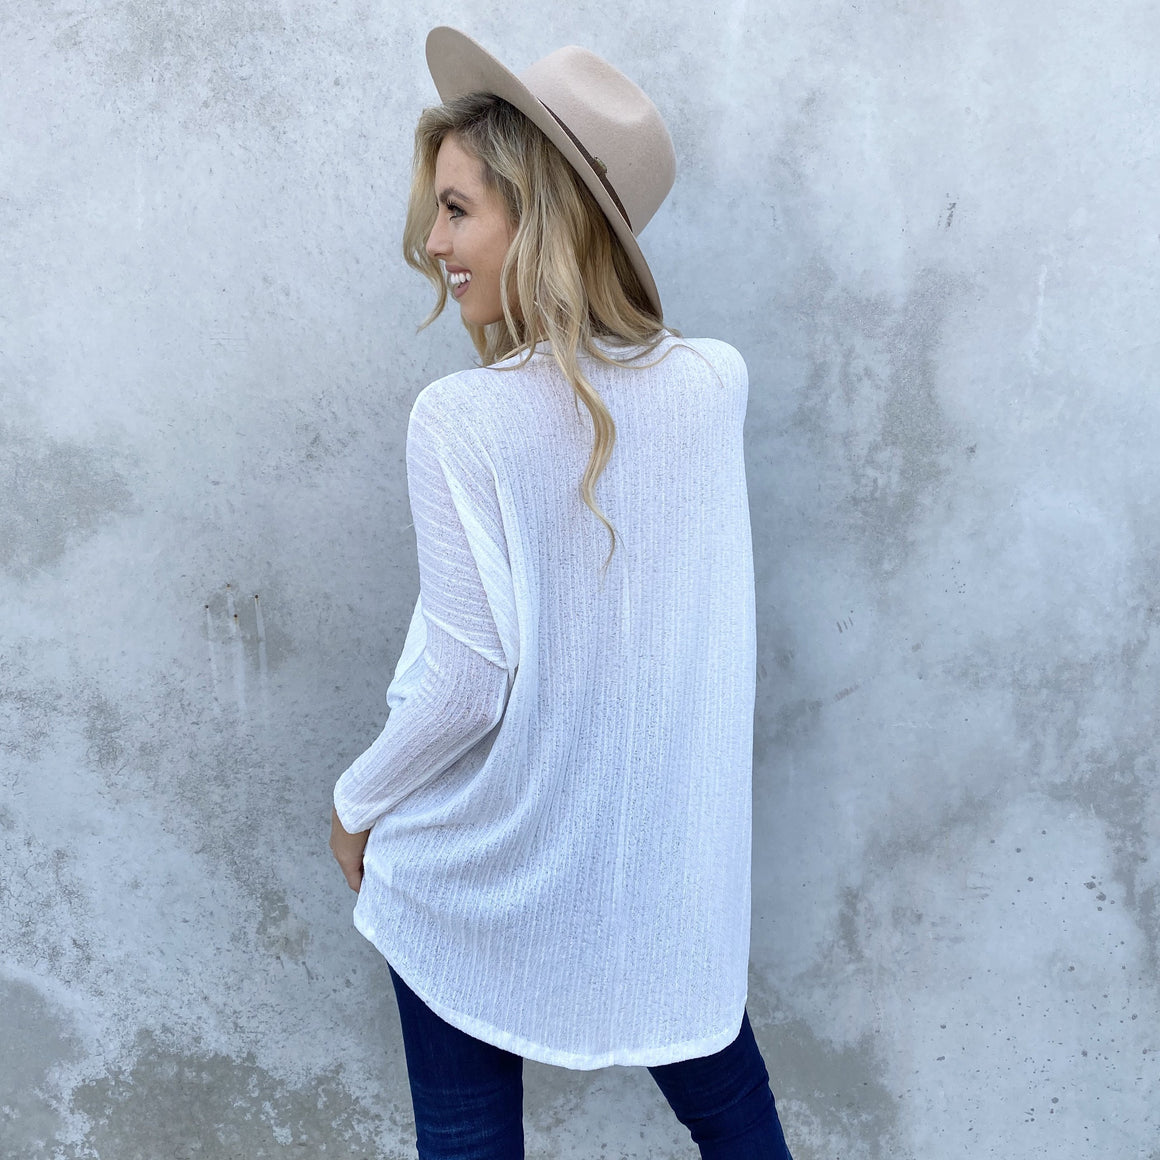 Pocketful Of Sunshine Knit Ivory Top - Dainty Hooligan